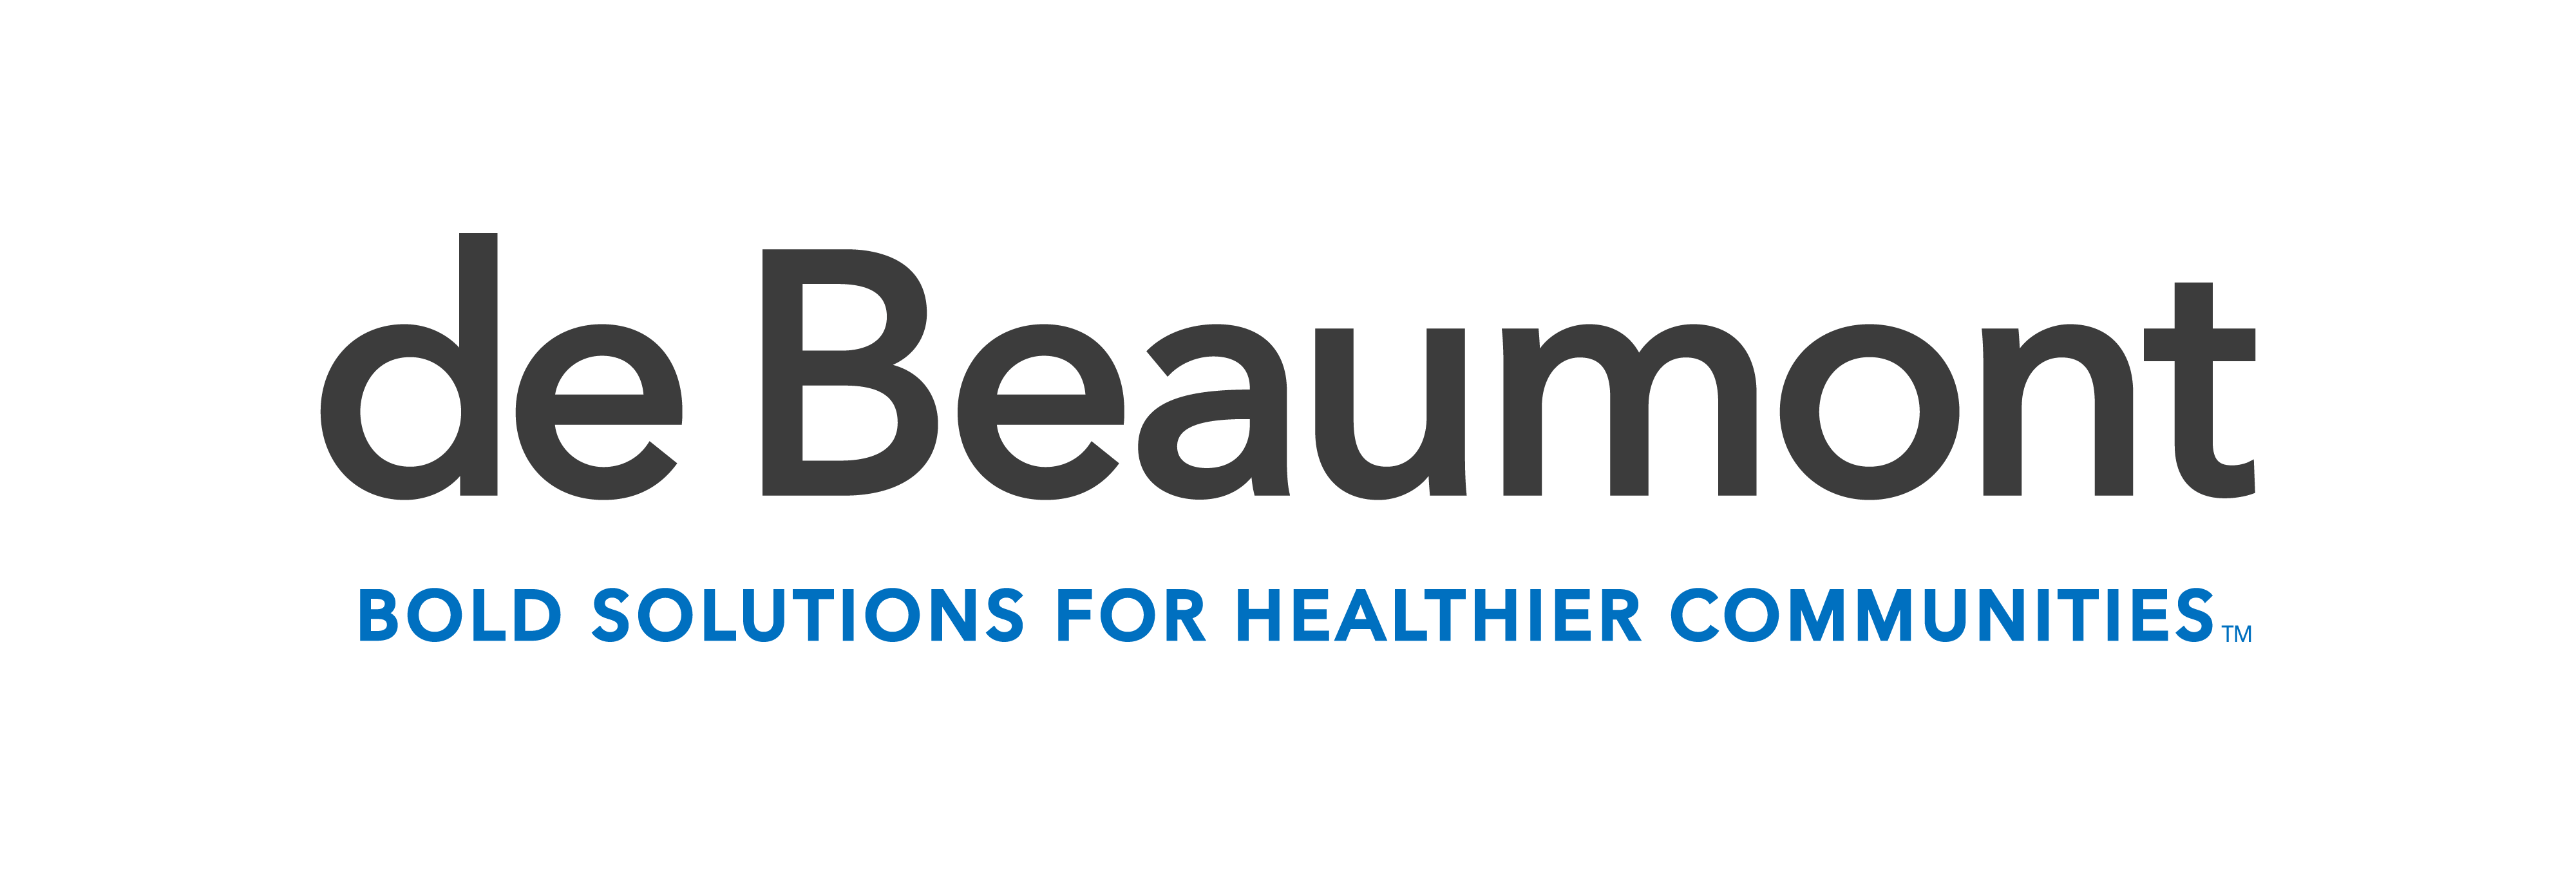 New Job Opening at The de Beaumont Foundation